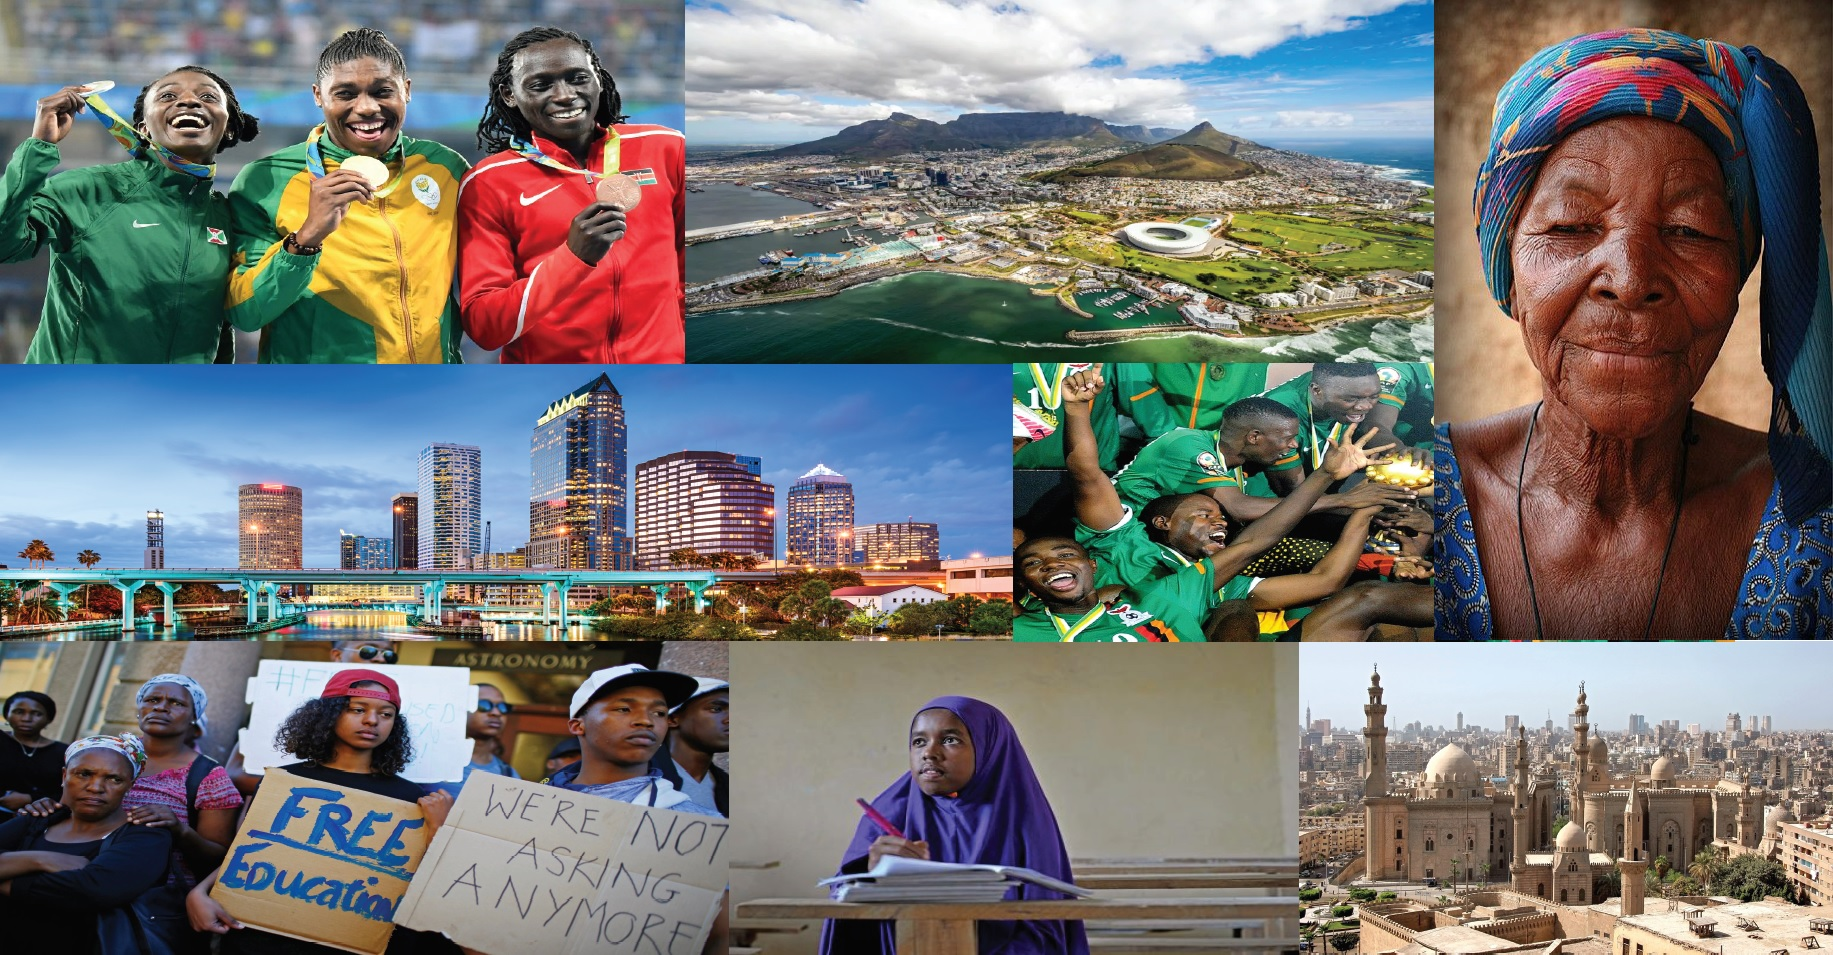 The photos include areas of interest in the social/economic/historical studies of the African Studies Graduate Program, as included in our other promotional materials for the program.